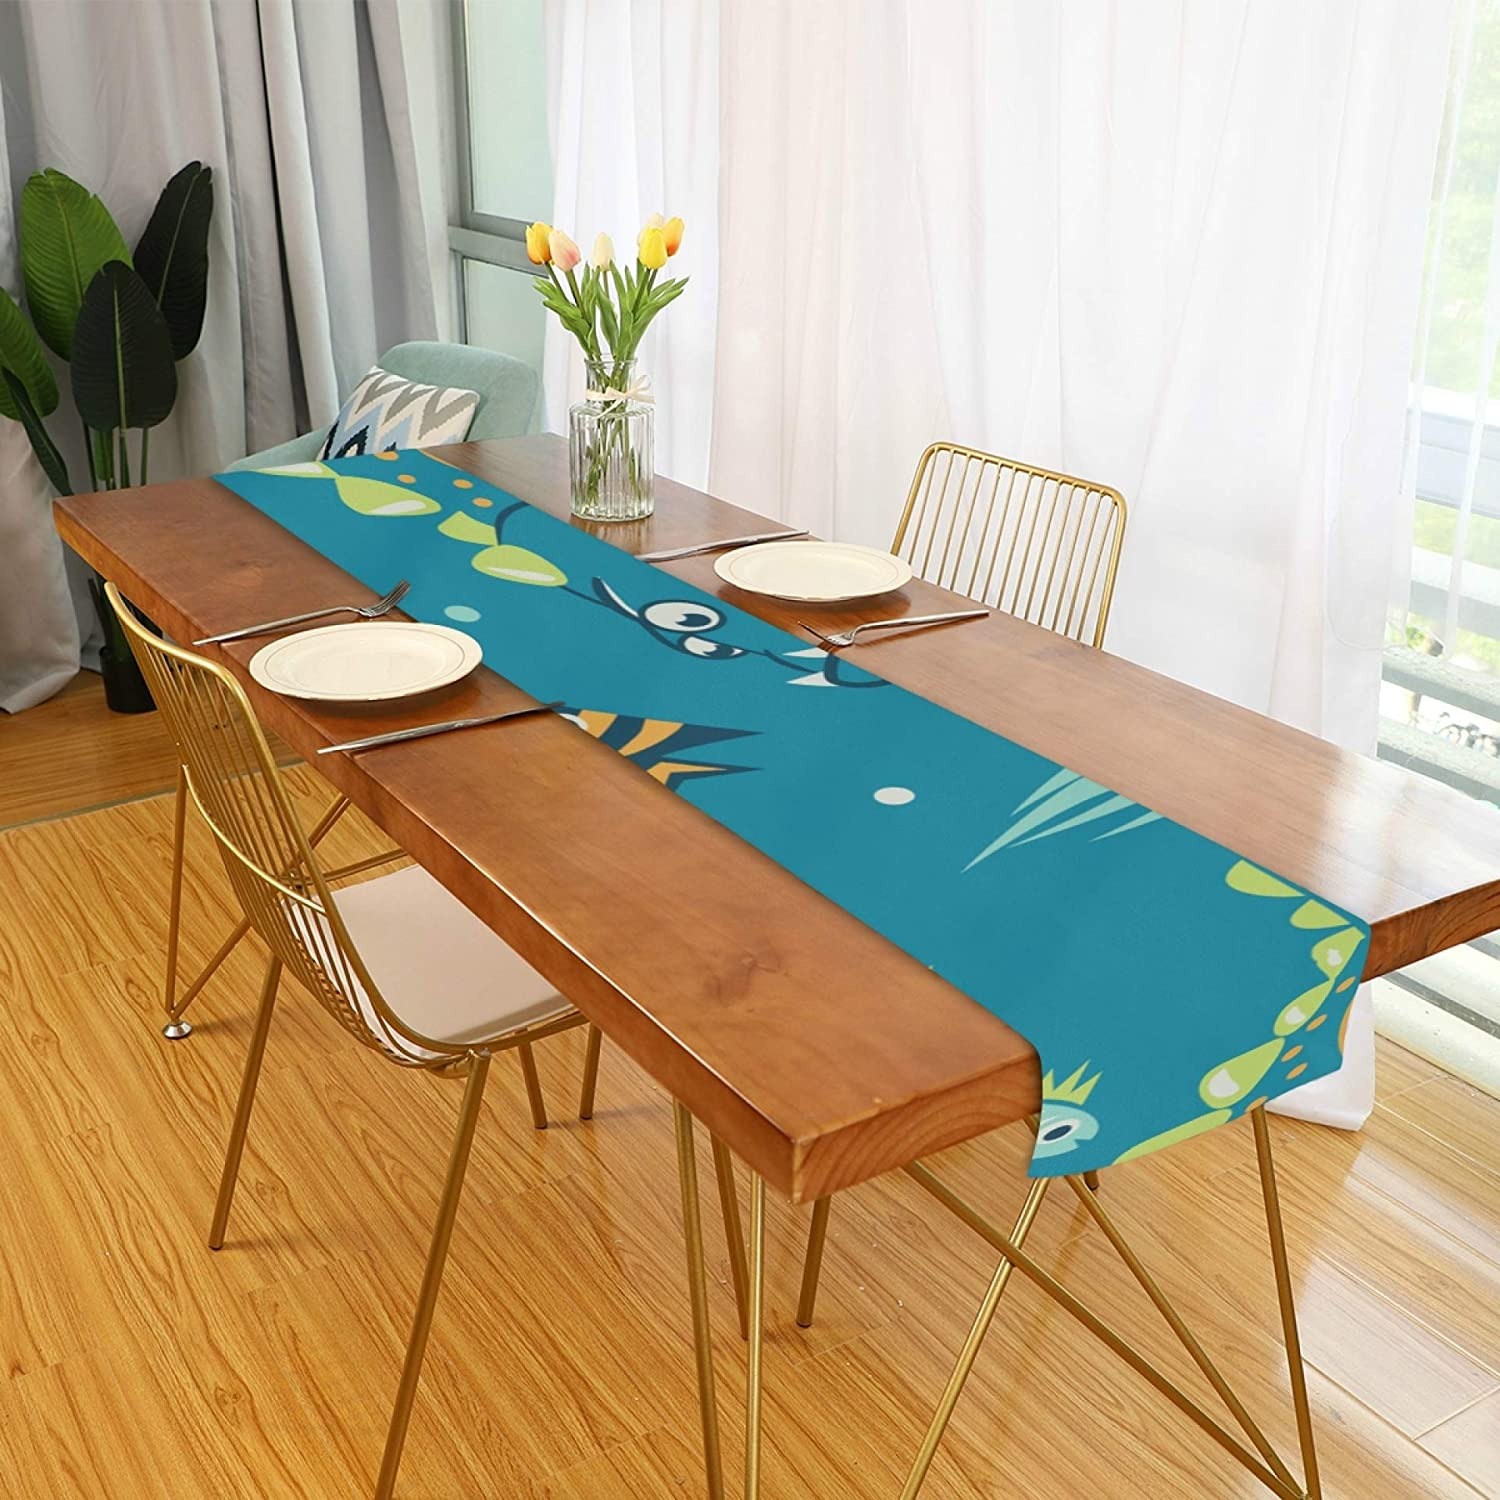 Amazon Com Farmhouse Table Runner For Home Kitchen Dining Table Coffee Table Decor Winter Table Runner Pattern Marine Dinosaurs Fish Jellyfish Table Linens For Indoor Outdoor Everyday Uses 13x90in Home Kitchen